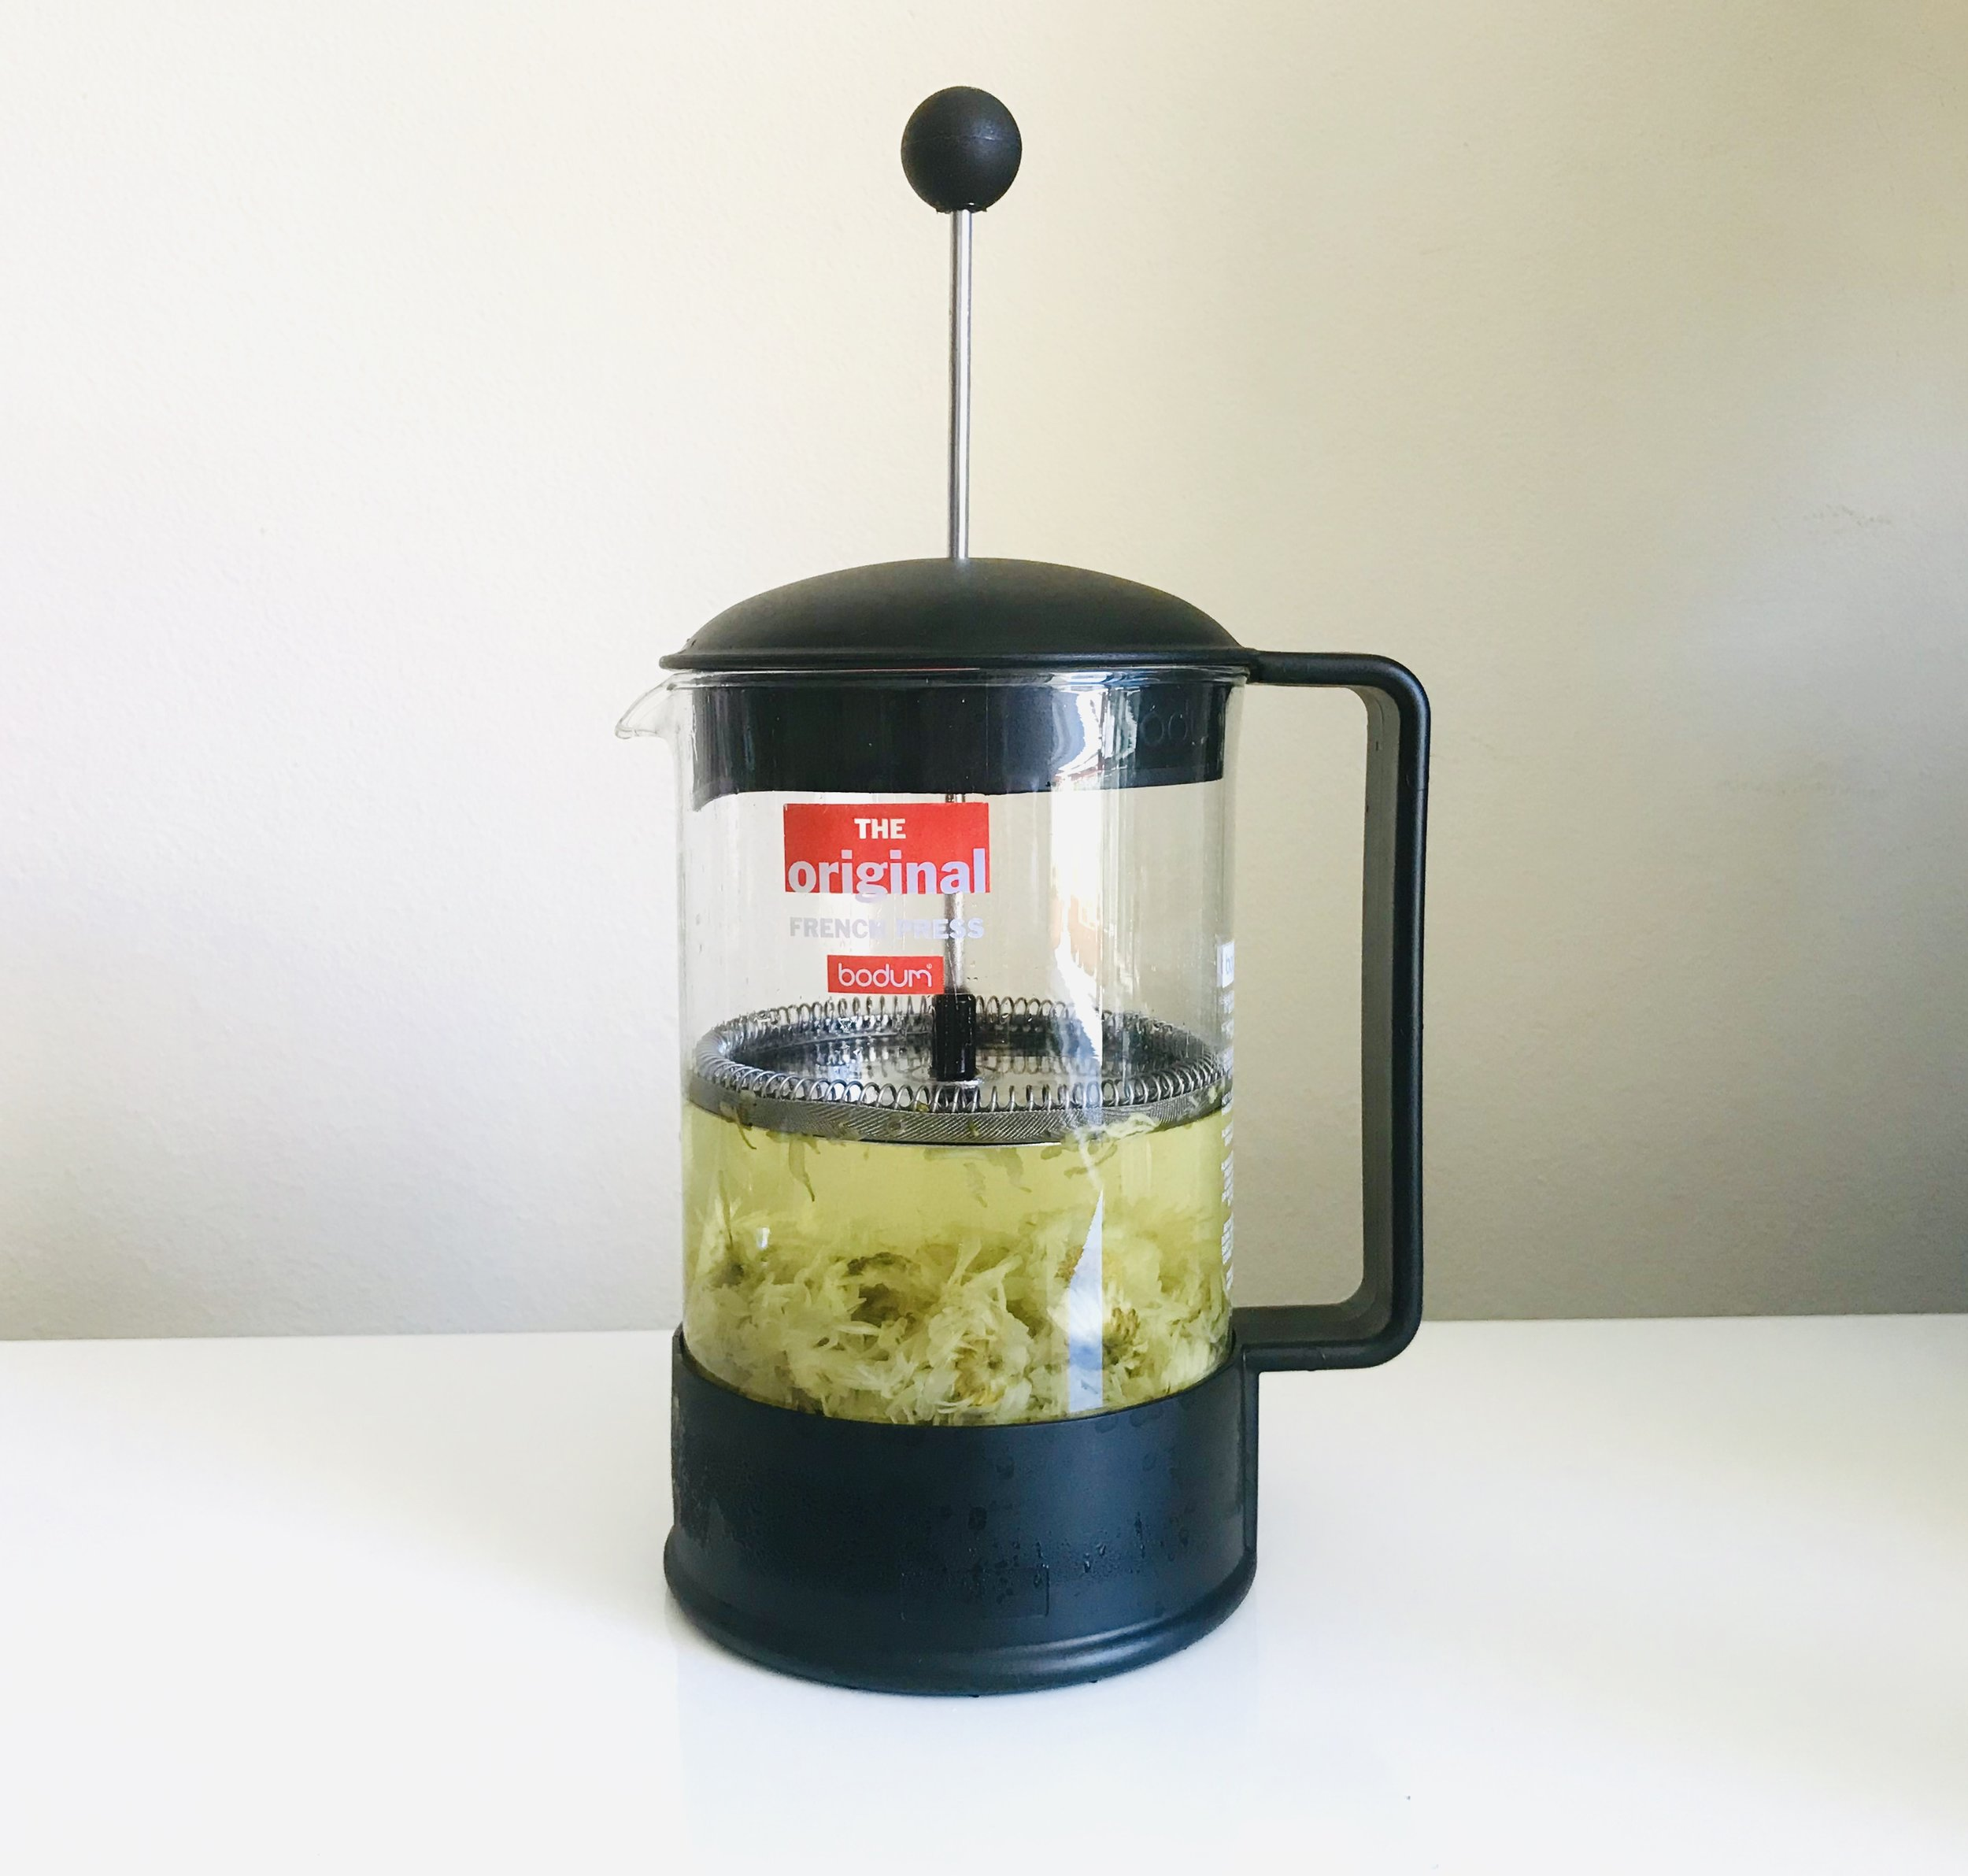 We used a normal coffee plunger (this is the 8 cup coffee maker from Bodum) to make the chrysanthemum tea. After infusing, you simply press the plunger down and pour the tea as normal.